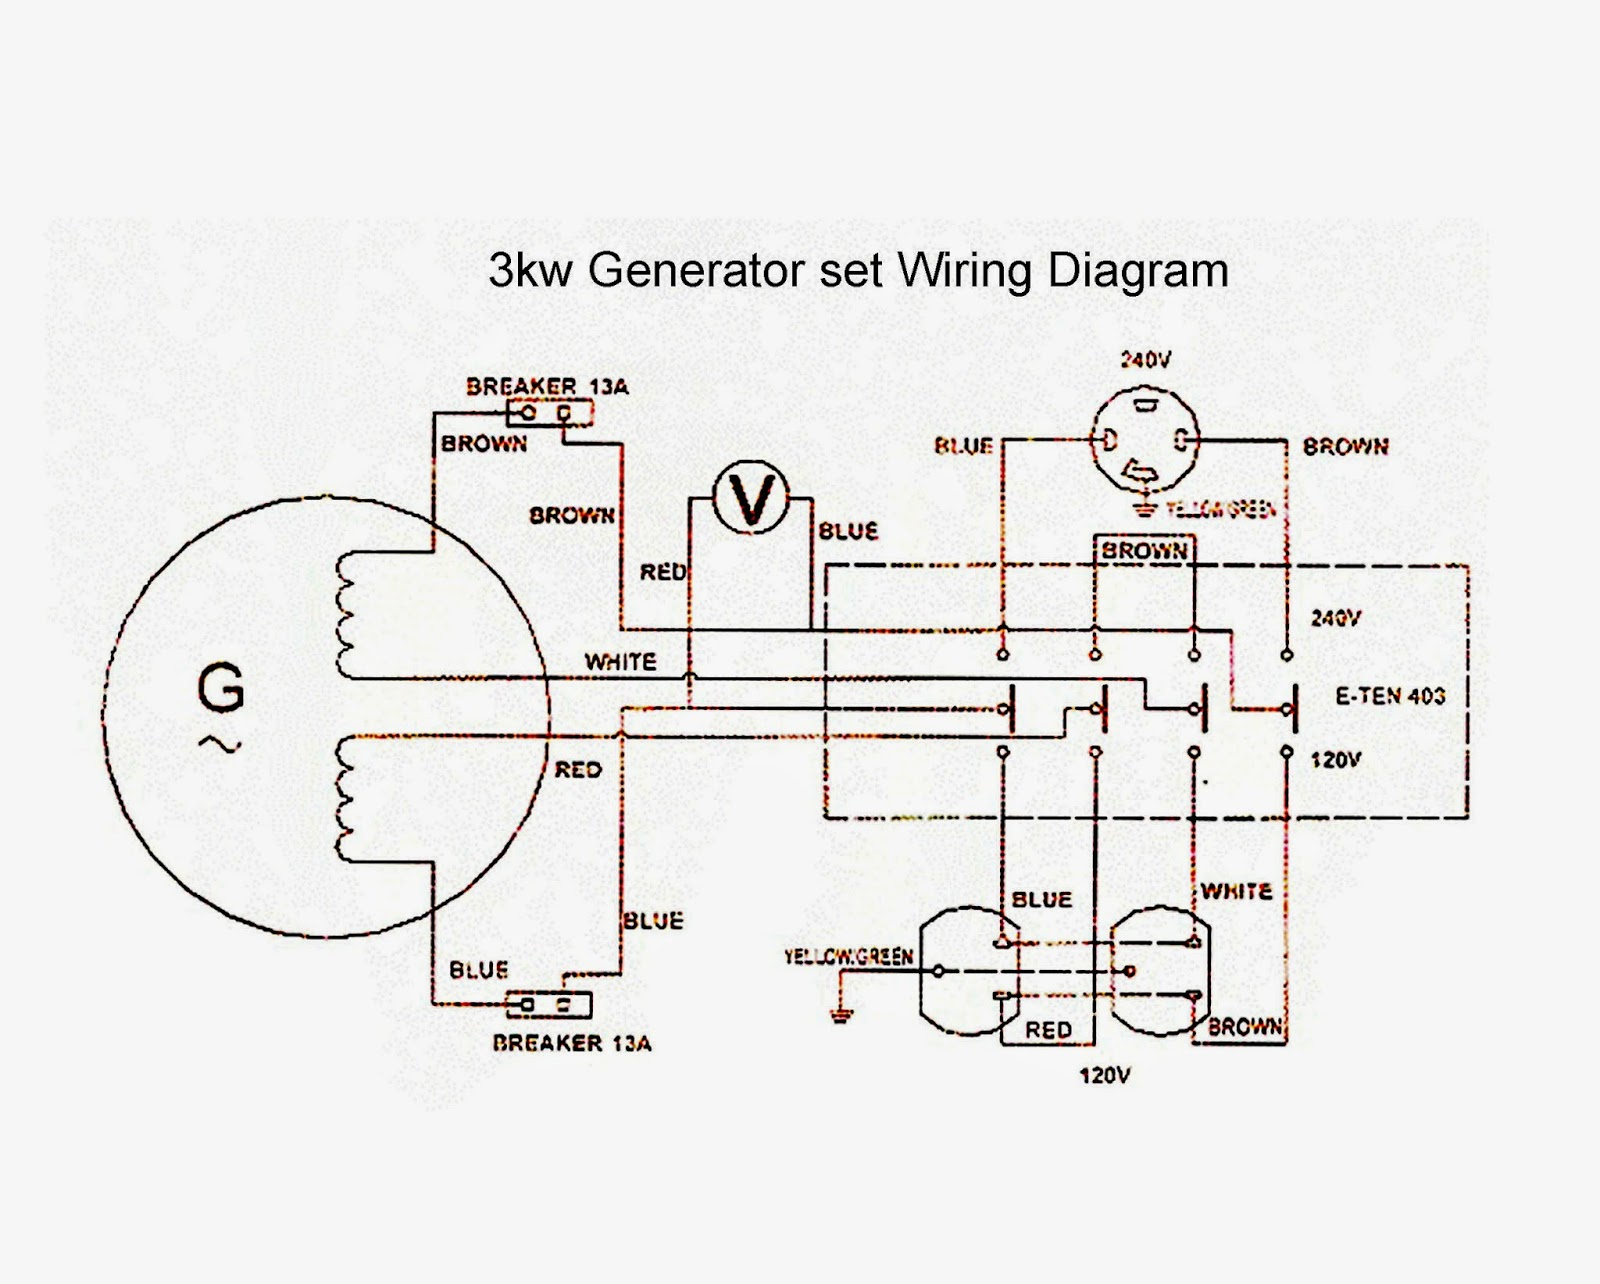 95 Champion Wiring Diagram | Wiring Diagram on 3 phase generator schematic, power generator schematic, bosch dishwasher parts schematic, generator voltage regulator schematic, smoke detectors schematic, motor generator set schematic, generator capacitor, onan generator schematic, whirlpool dishwasher schematic, refrigeration electrical schematic, 4-20ma circuit schematic, diesel generator schematic, generator electrical schematic, 6v generator regulator schematic, generator fuel gauge, whole home generator schematic, dc generator schematic, generator alternator, generator diagrams, signal generator schematic,